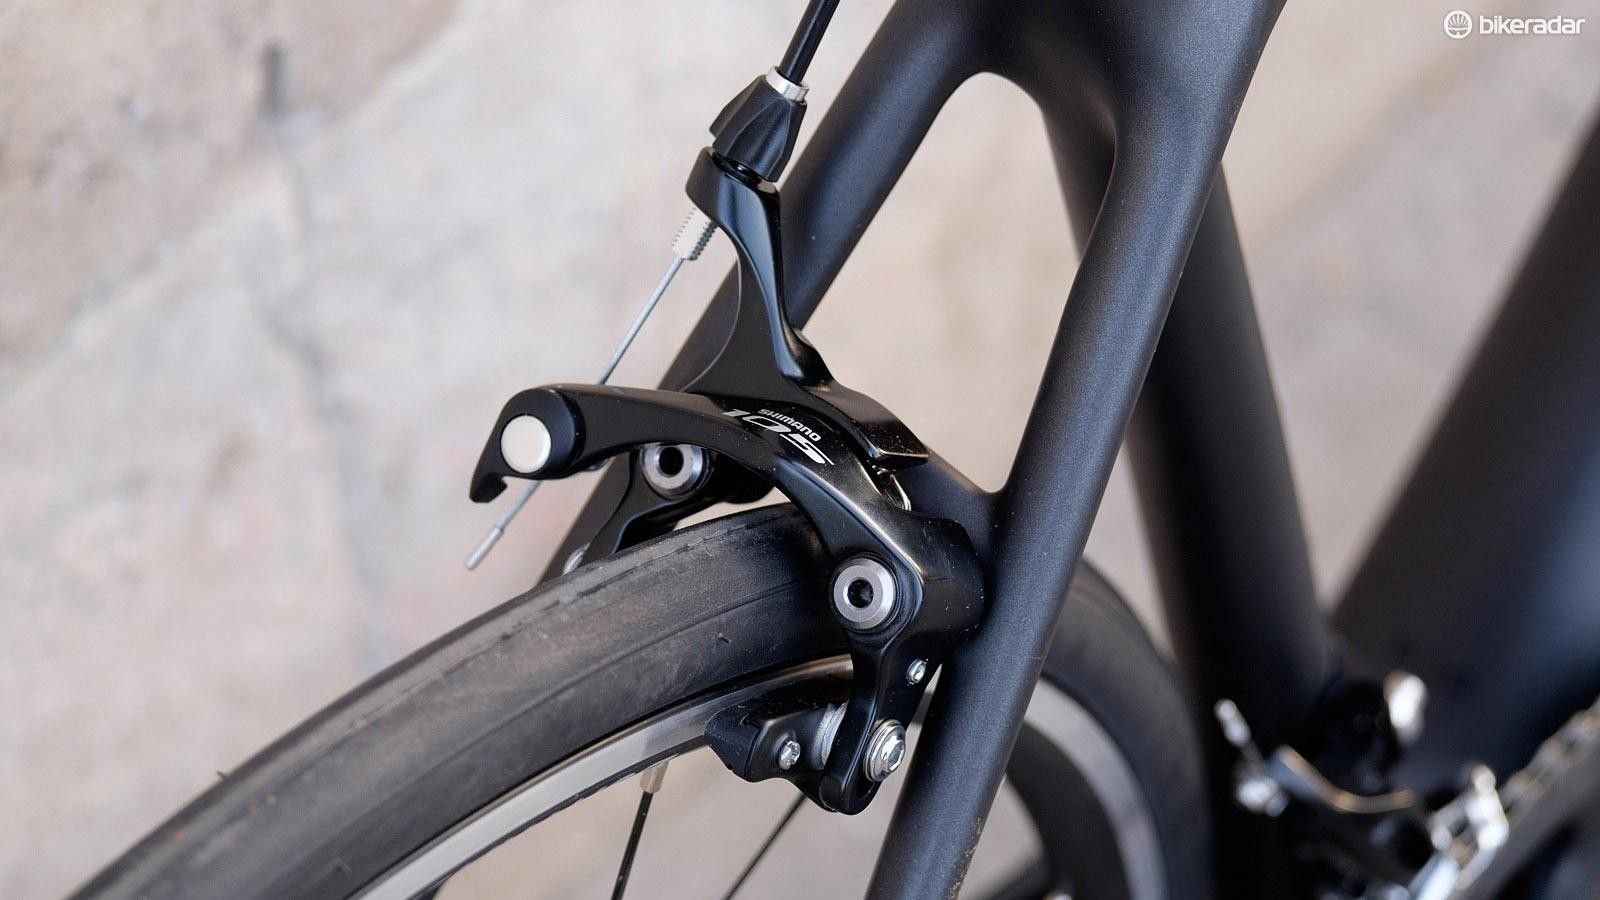 Shimano 105 rim brakes are a reliable choice for the price point